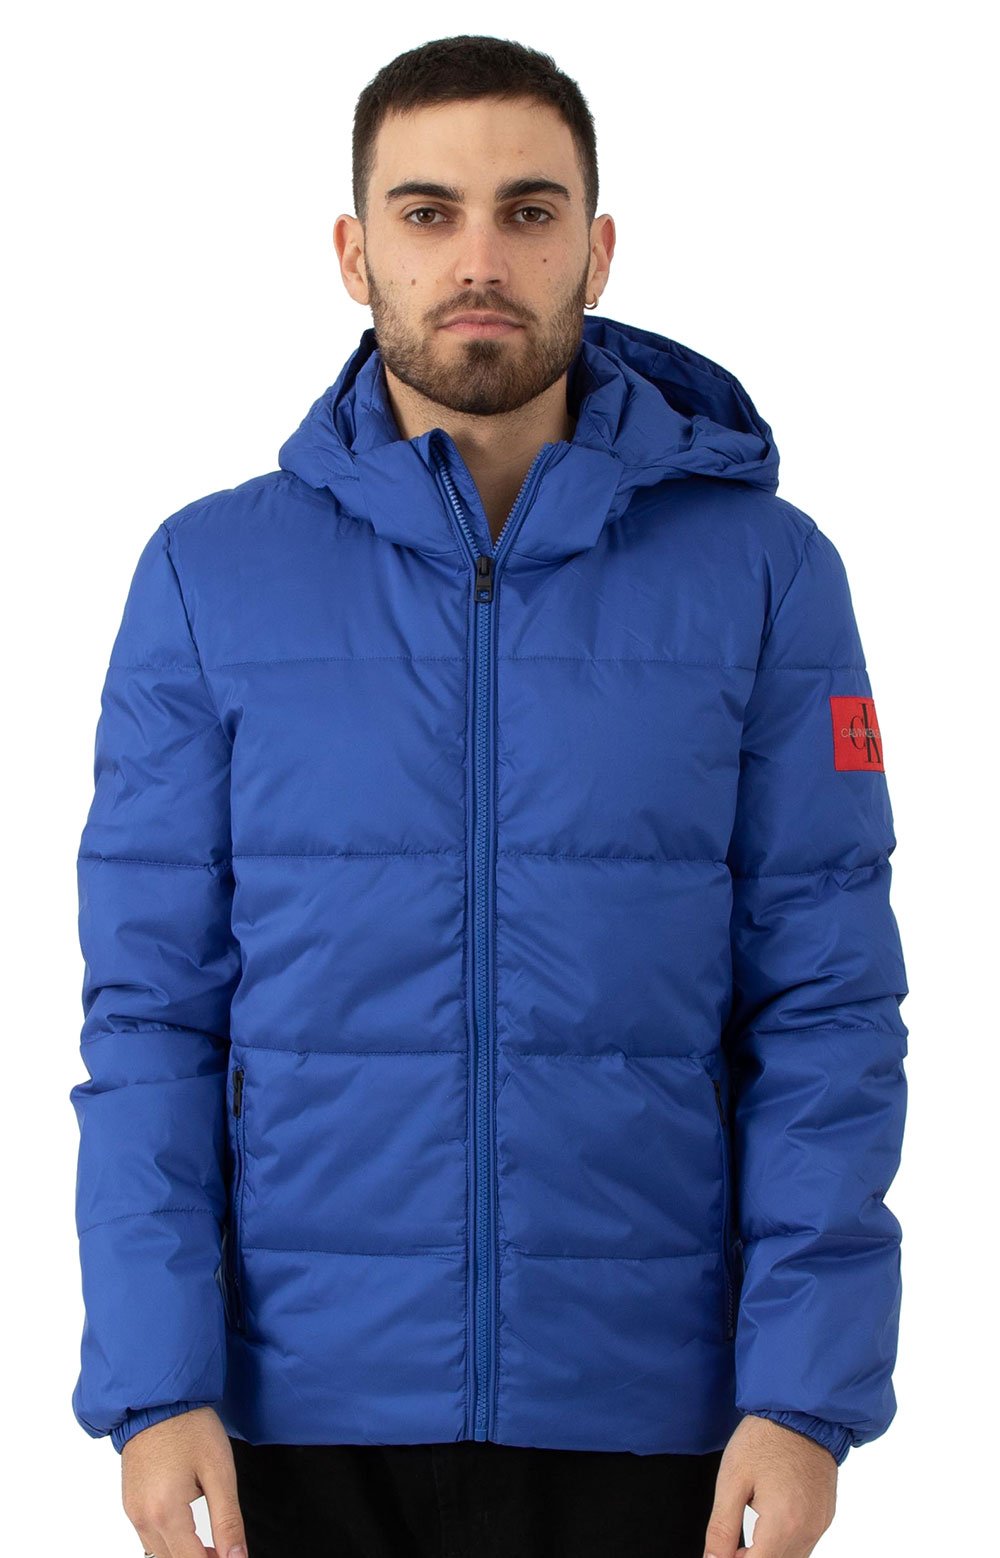 Onisol Puffer Jacket - Surf The Web